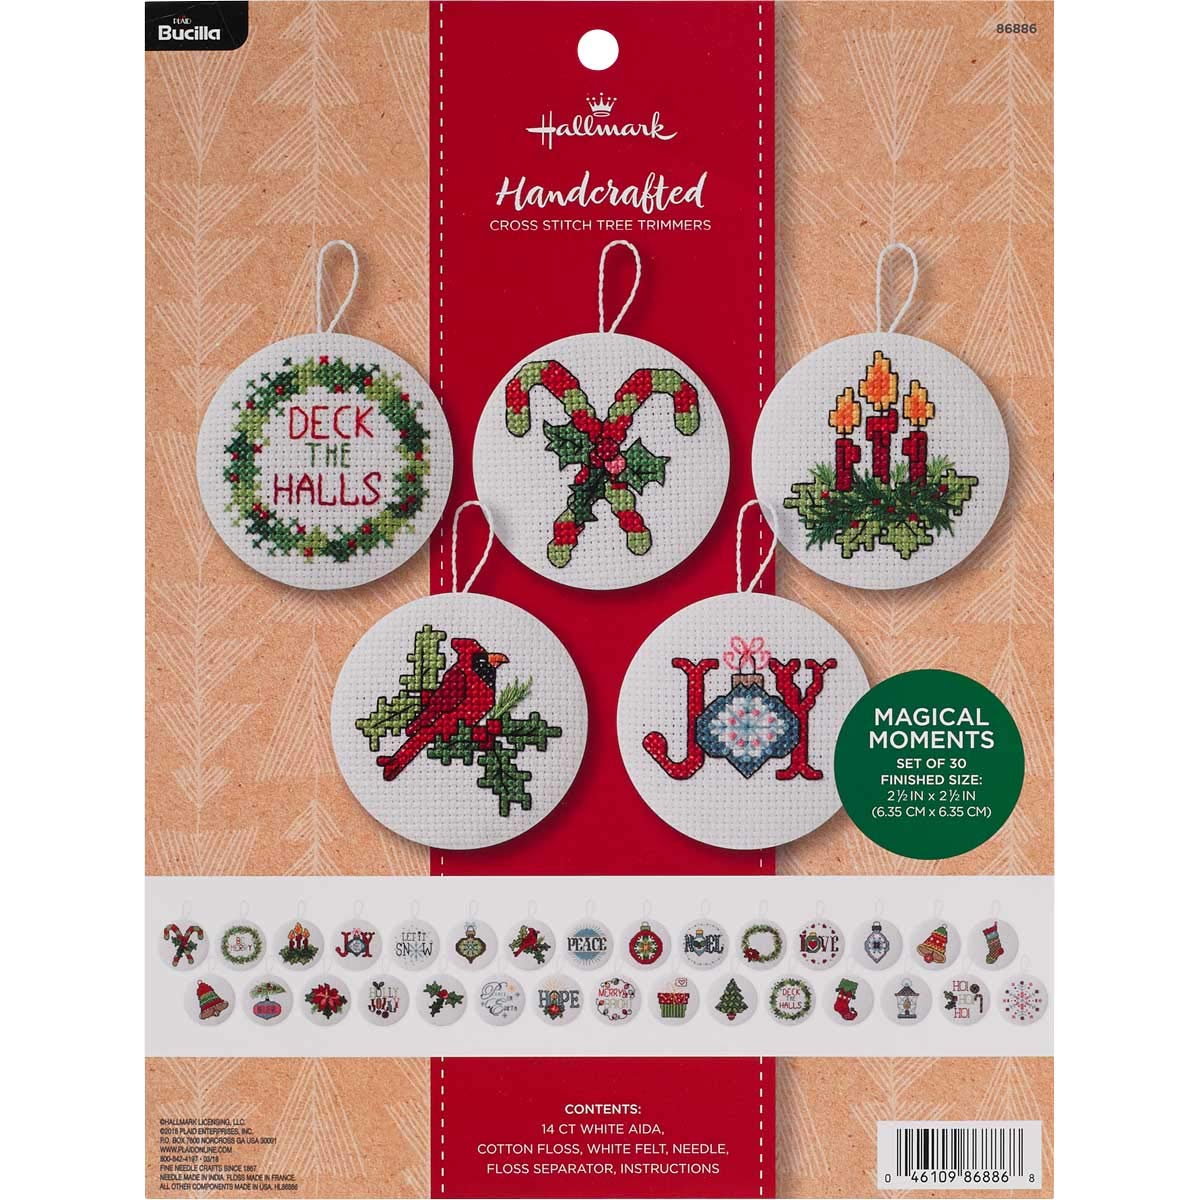 Bucilla 86886 Hallmark 30 pc. Felt Ornament Kit, 2.5'', Magical Moments by Bucilla